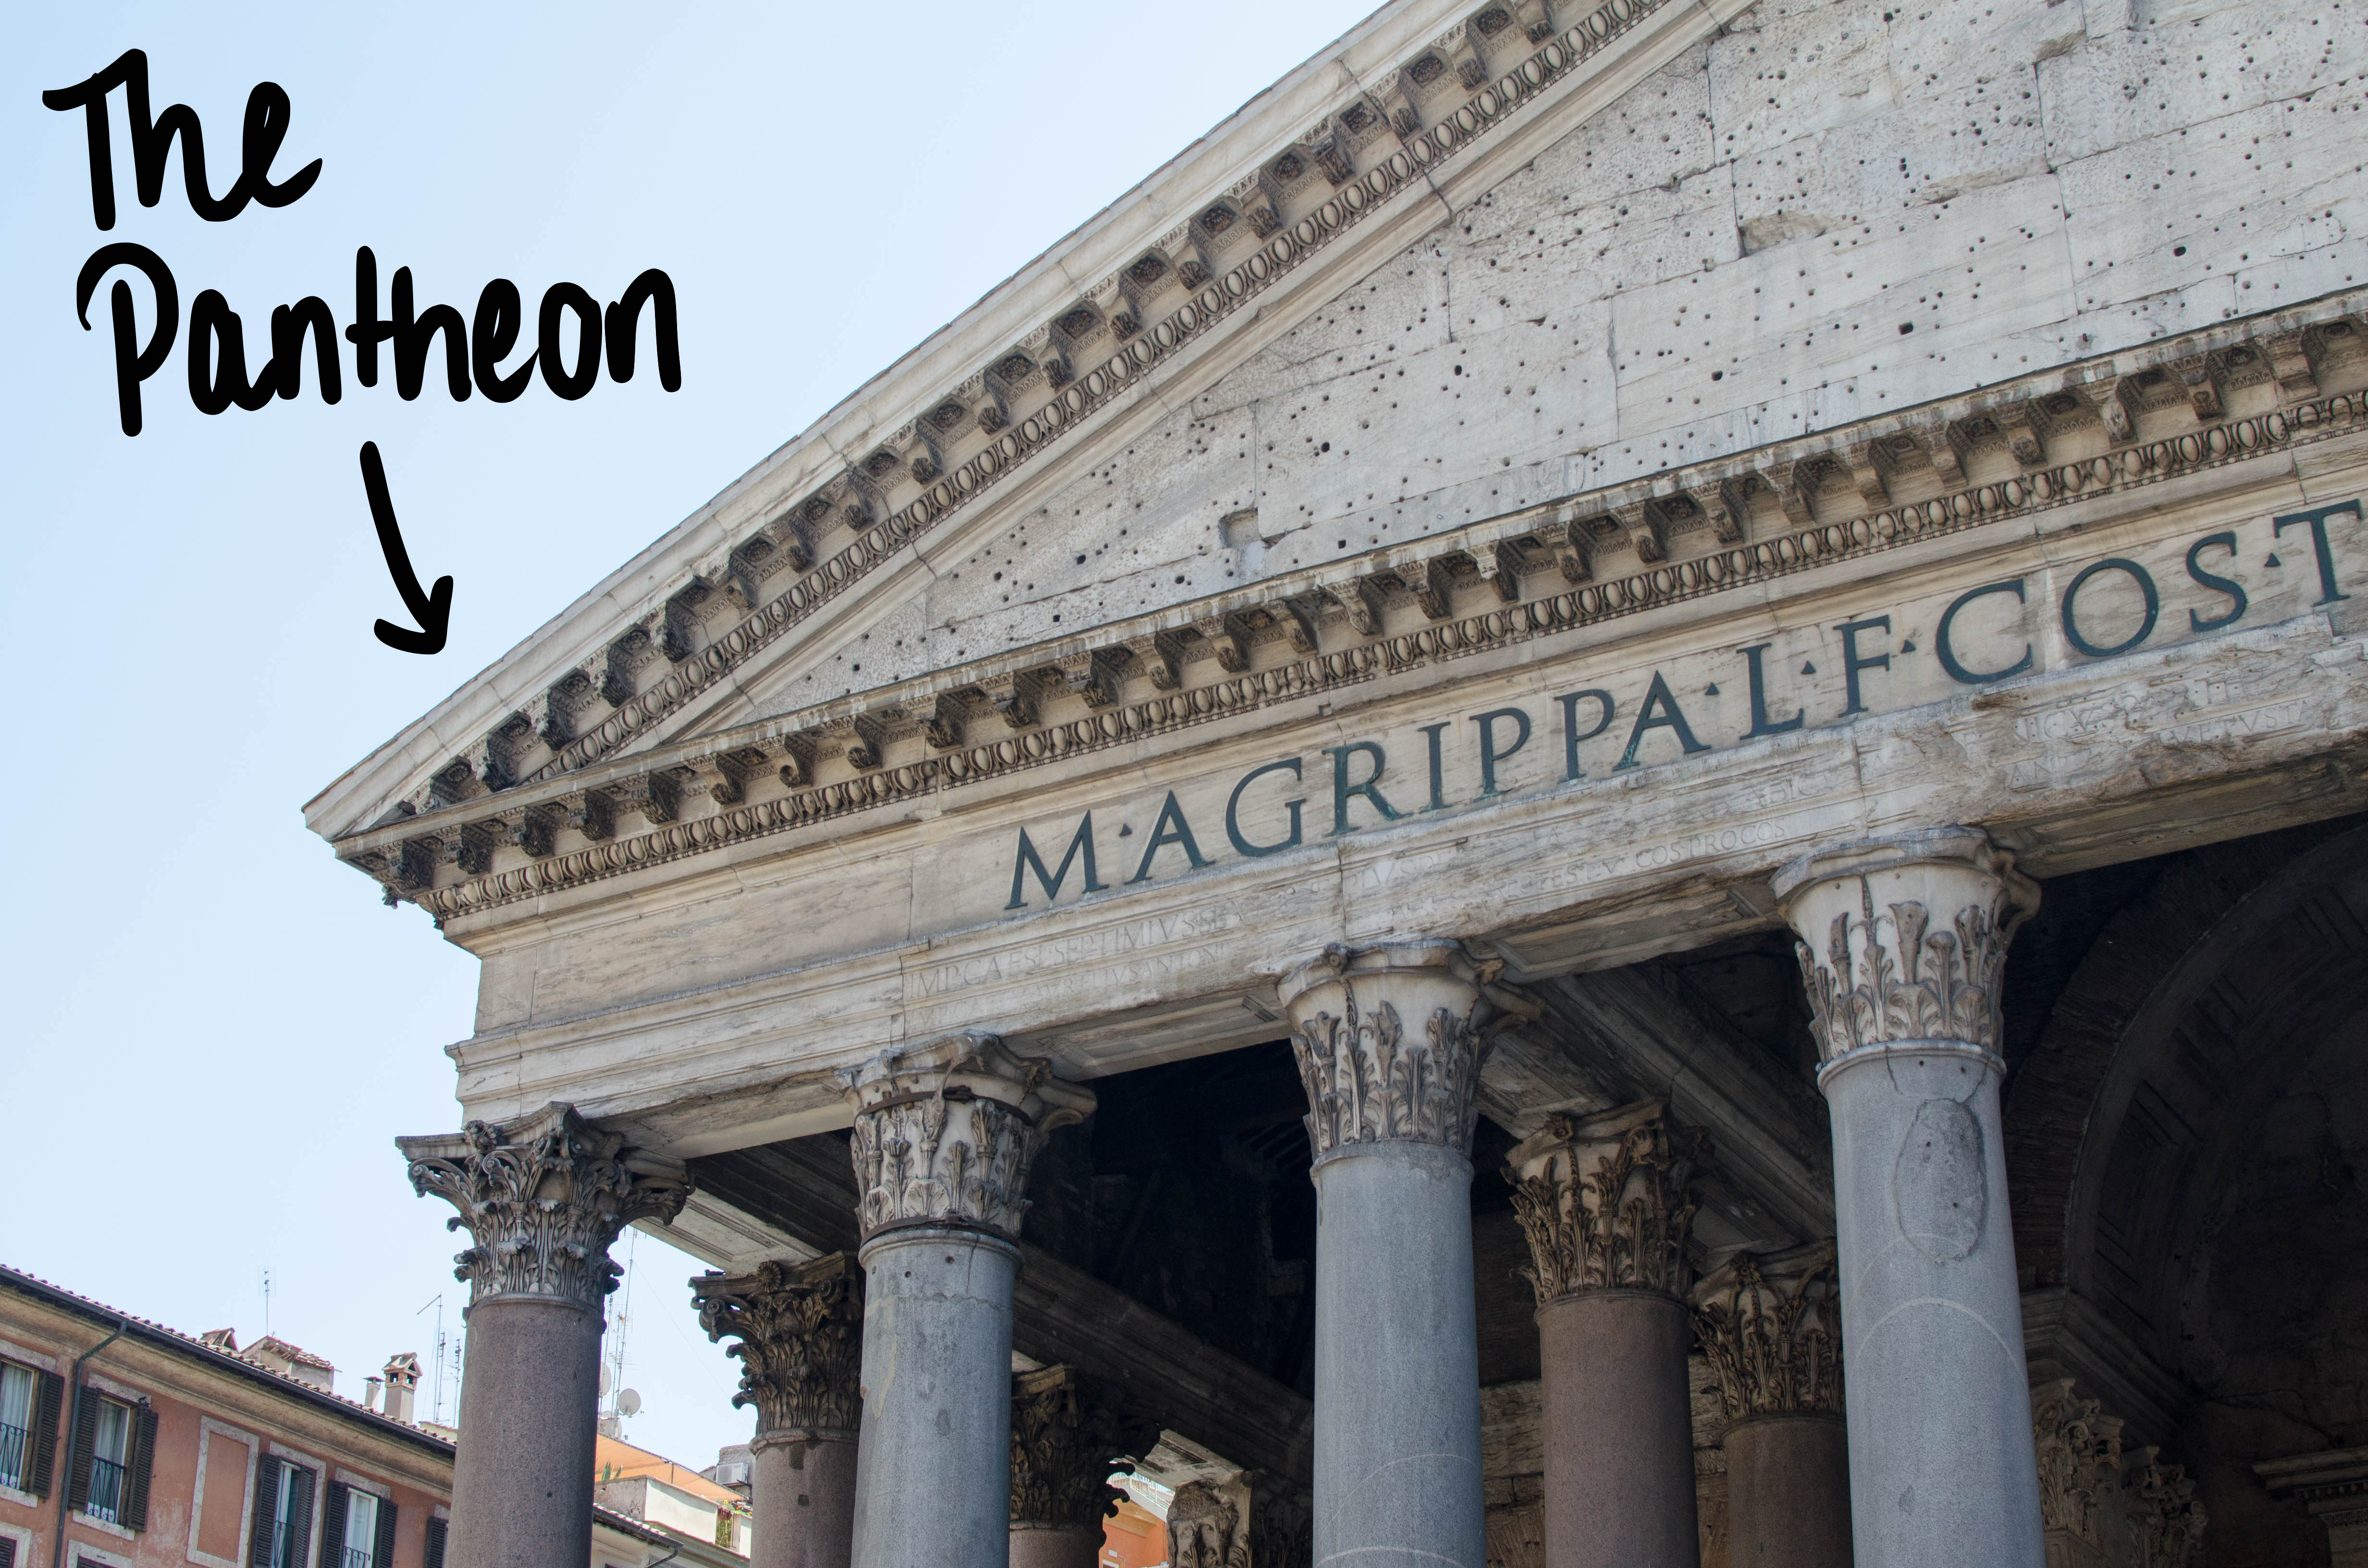 How to spend 96 hours in Rome, over on carryoncaroline.com